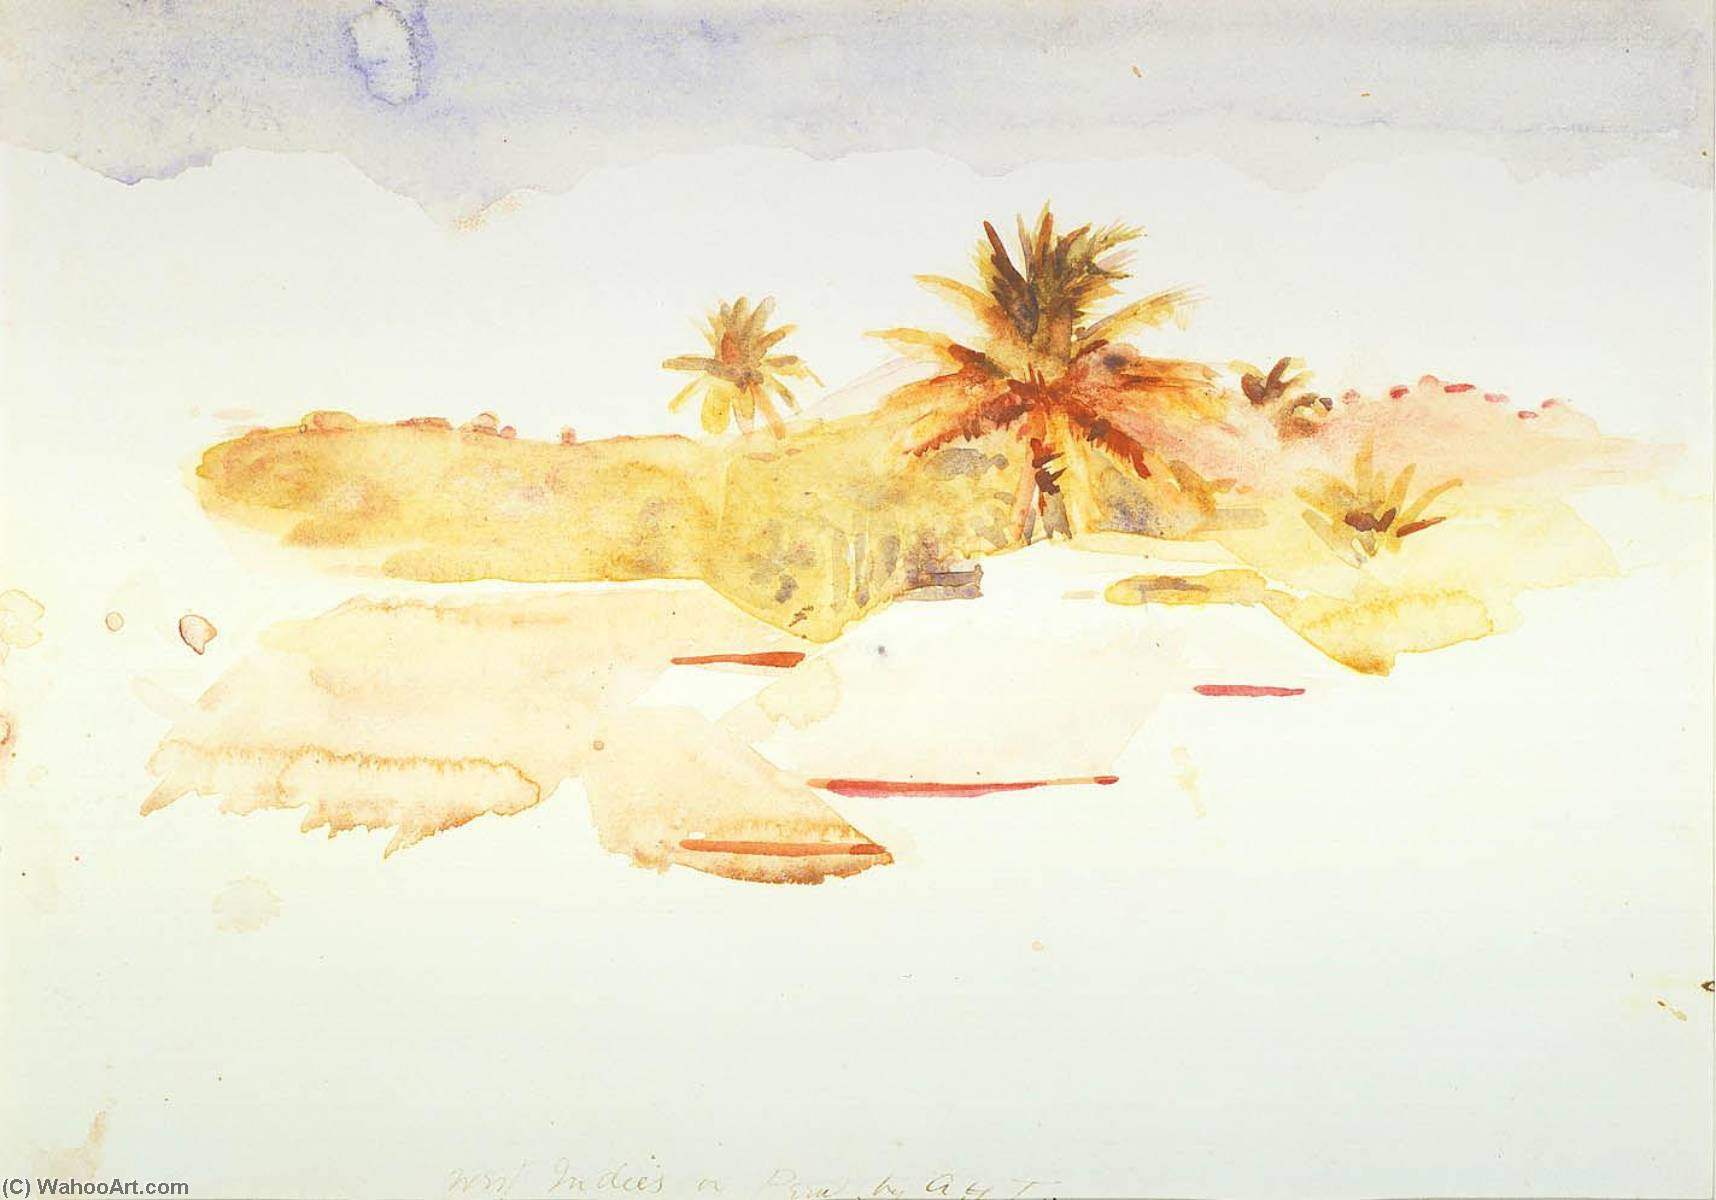 West Indies, Watercolour by Abbott Handerson Thayer (1849-1921, United States)